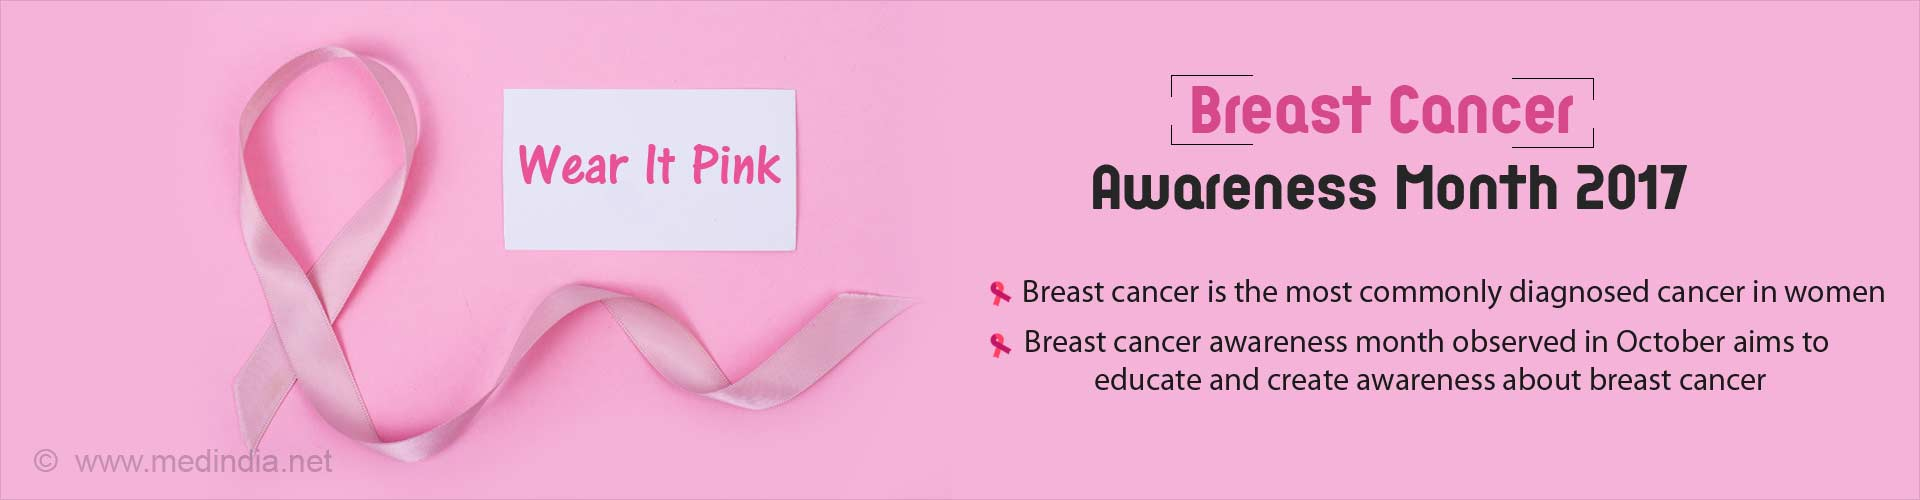 Breast Cancer Awareness Month - Early Detection And Treatment Can Save Lives